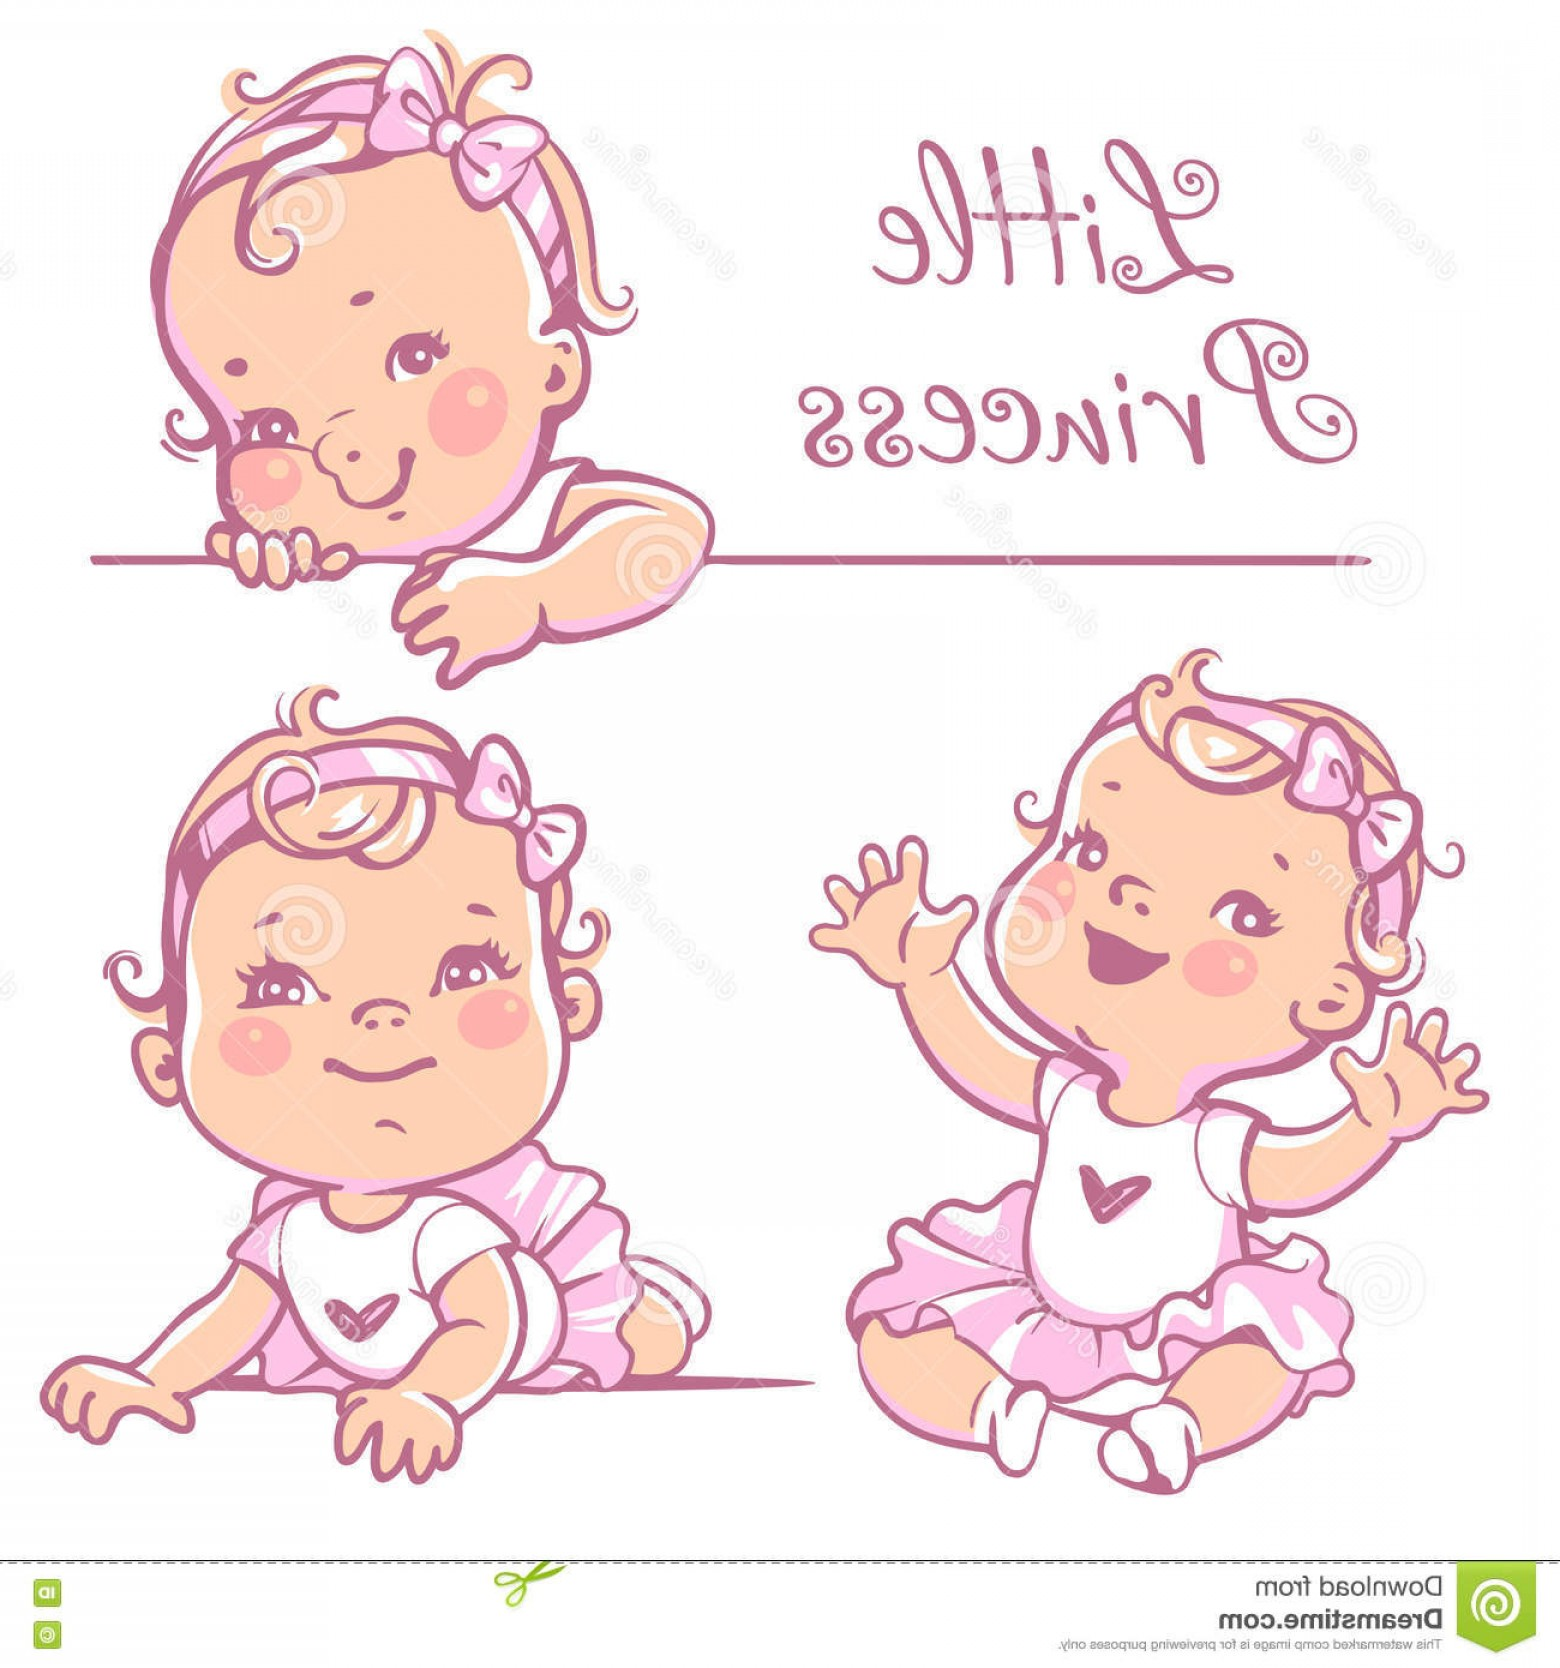 Princess Baby Girl Vector: Stock Illustration Little Baby Girl Set Cute Curly Hair Wearing Bow Pink Tutu Portrait Happy Smiling Child One Year Old Princess Image